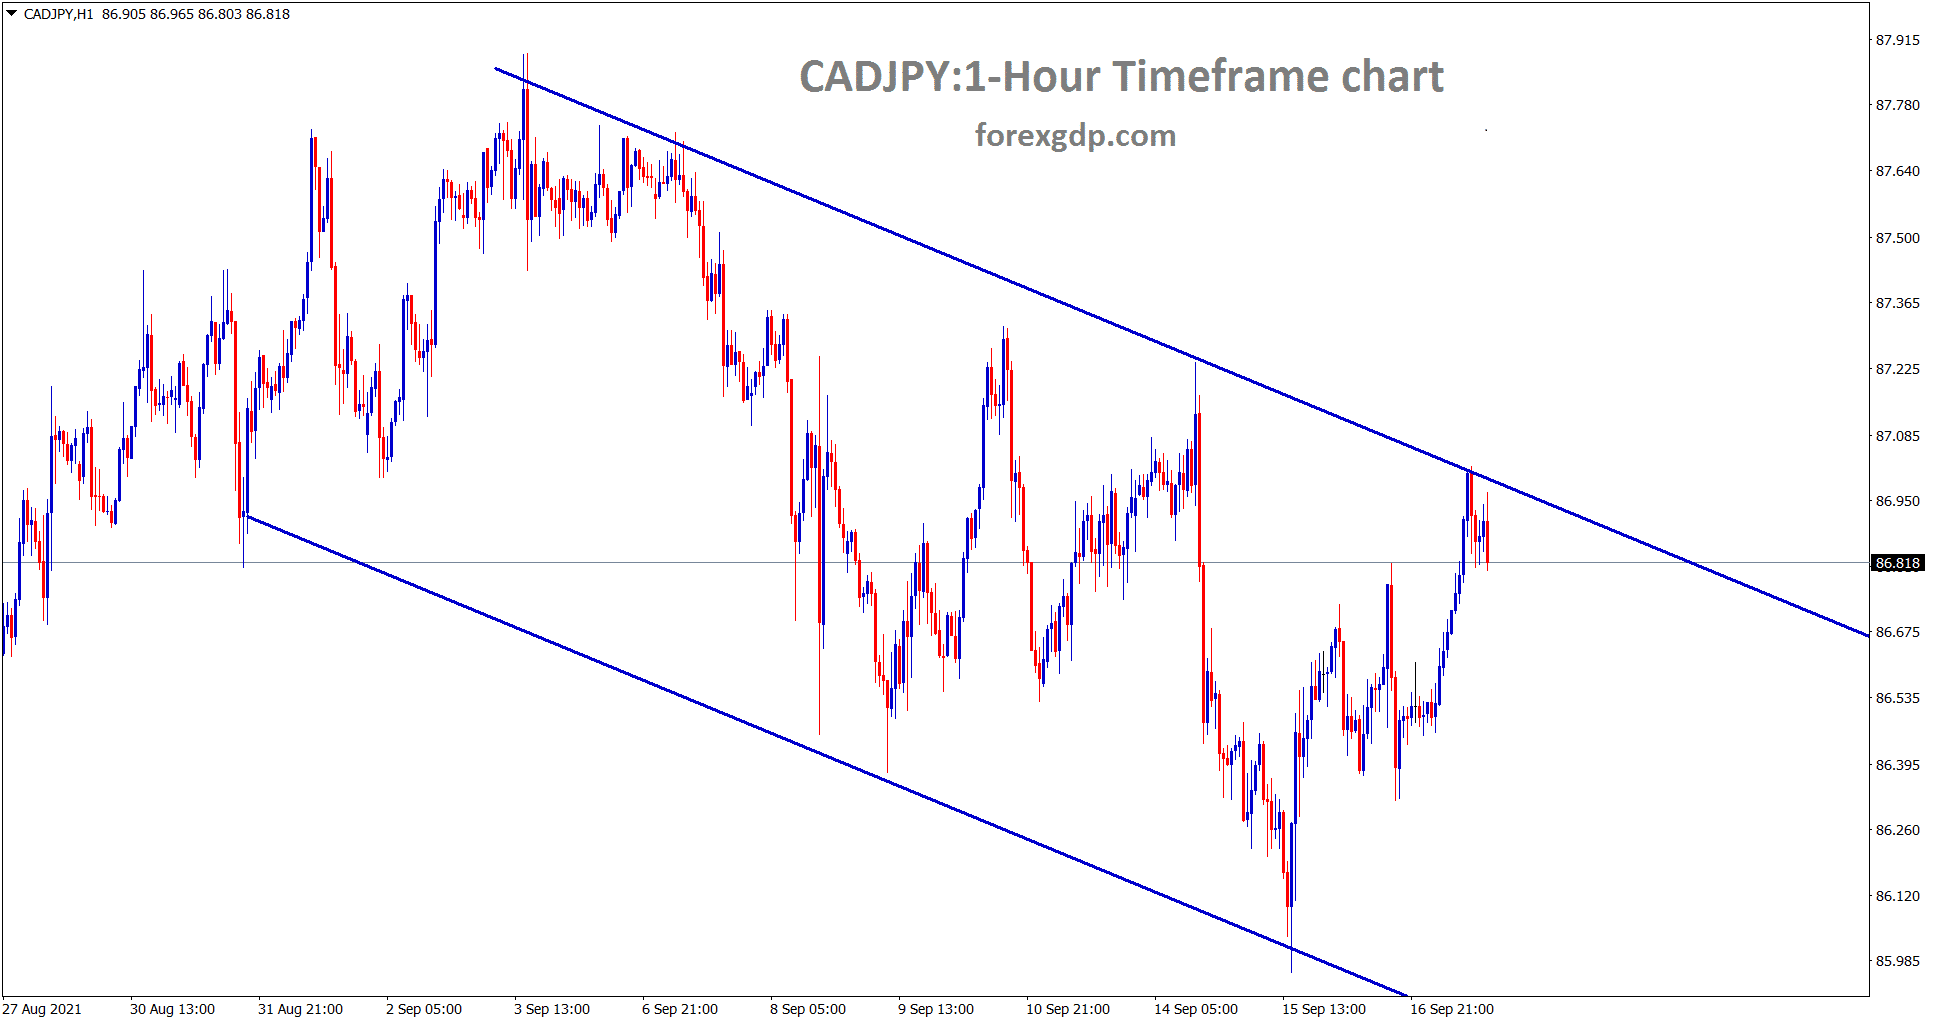 CADJPY hits the lower high area of the descending channel